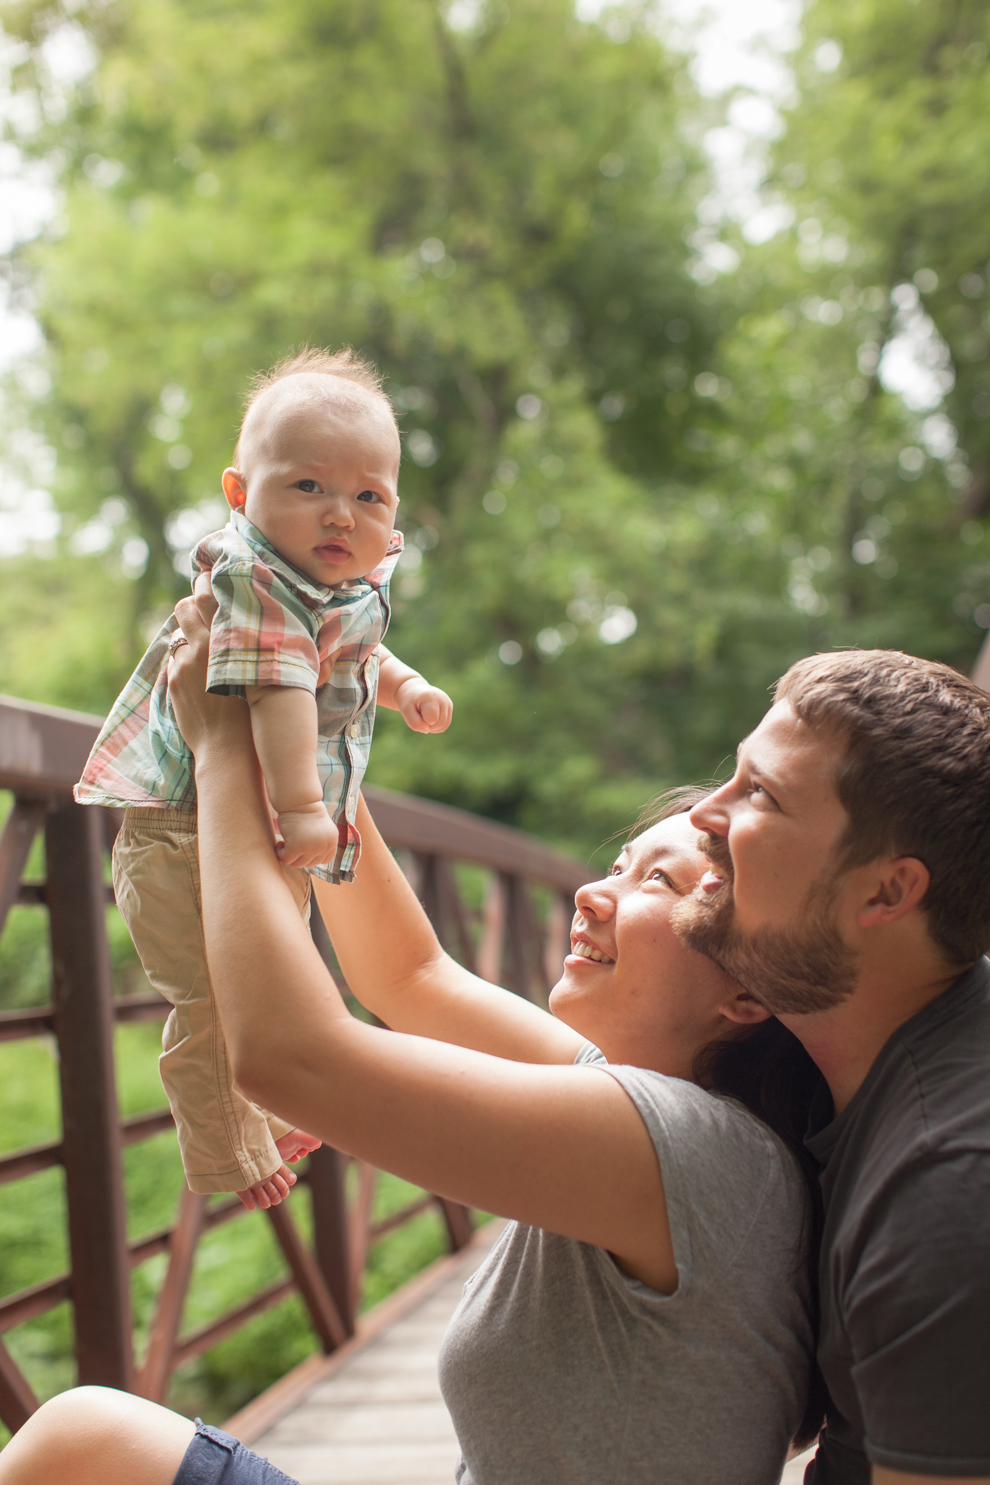 072614_Lodin_Family_3mth_422